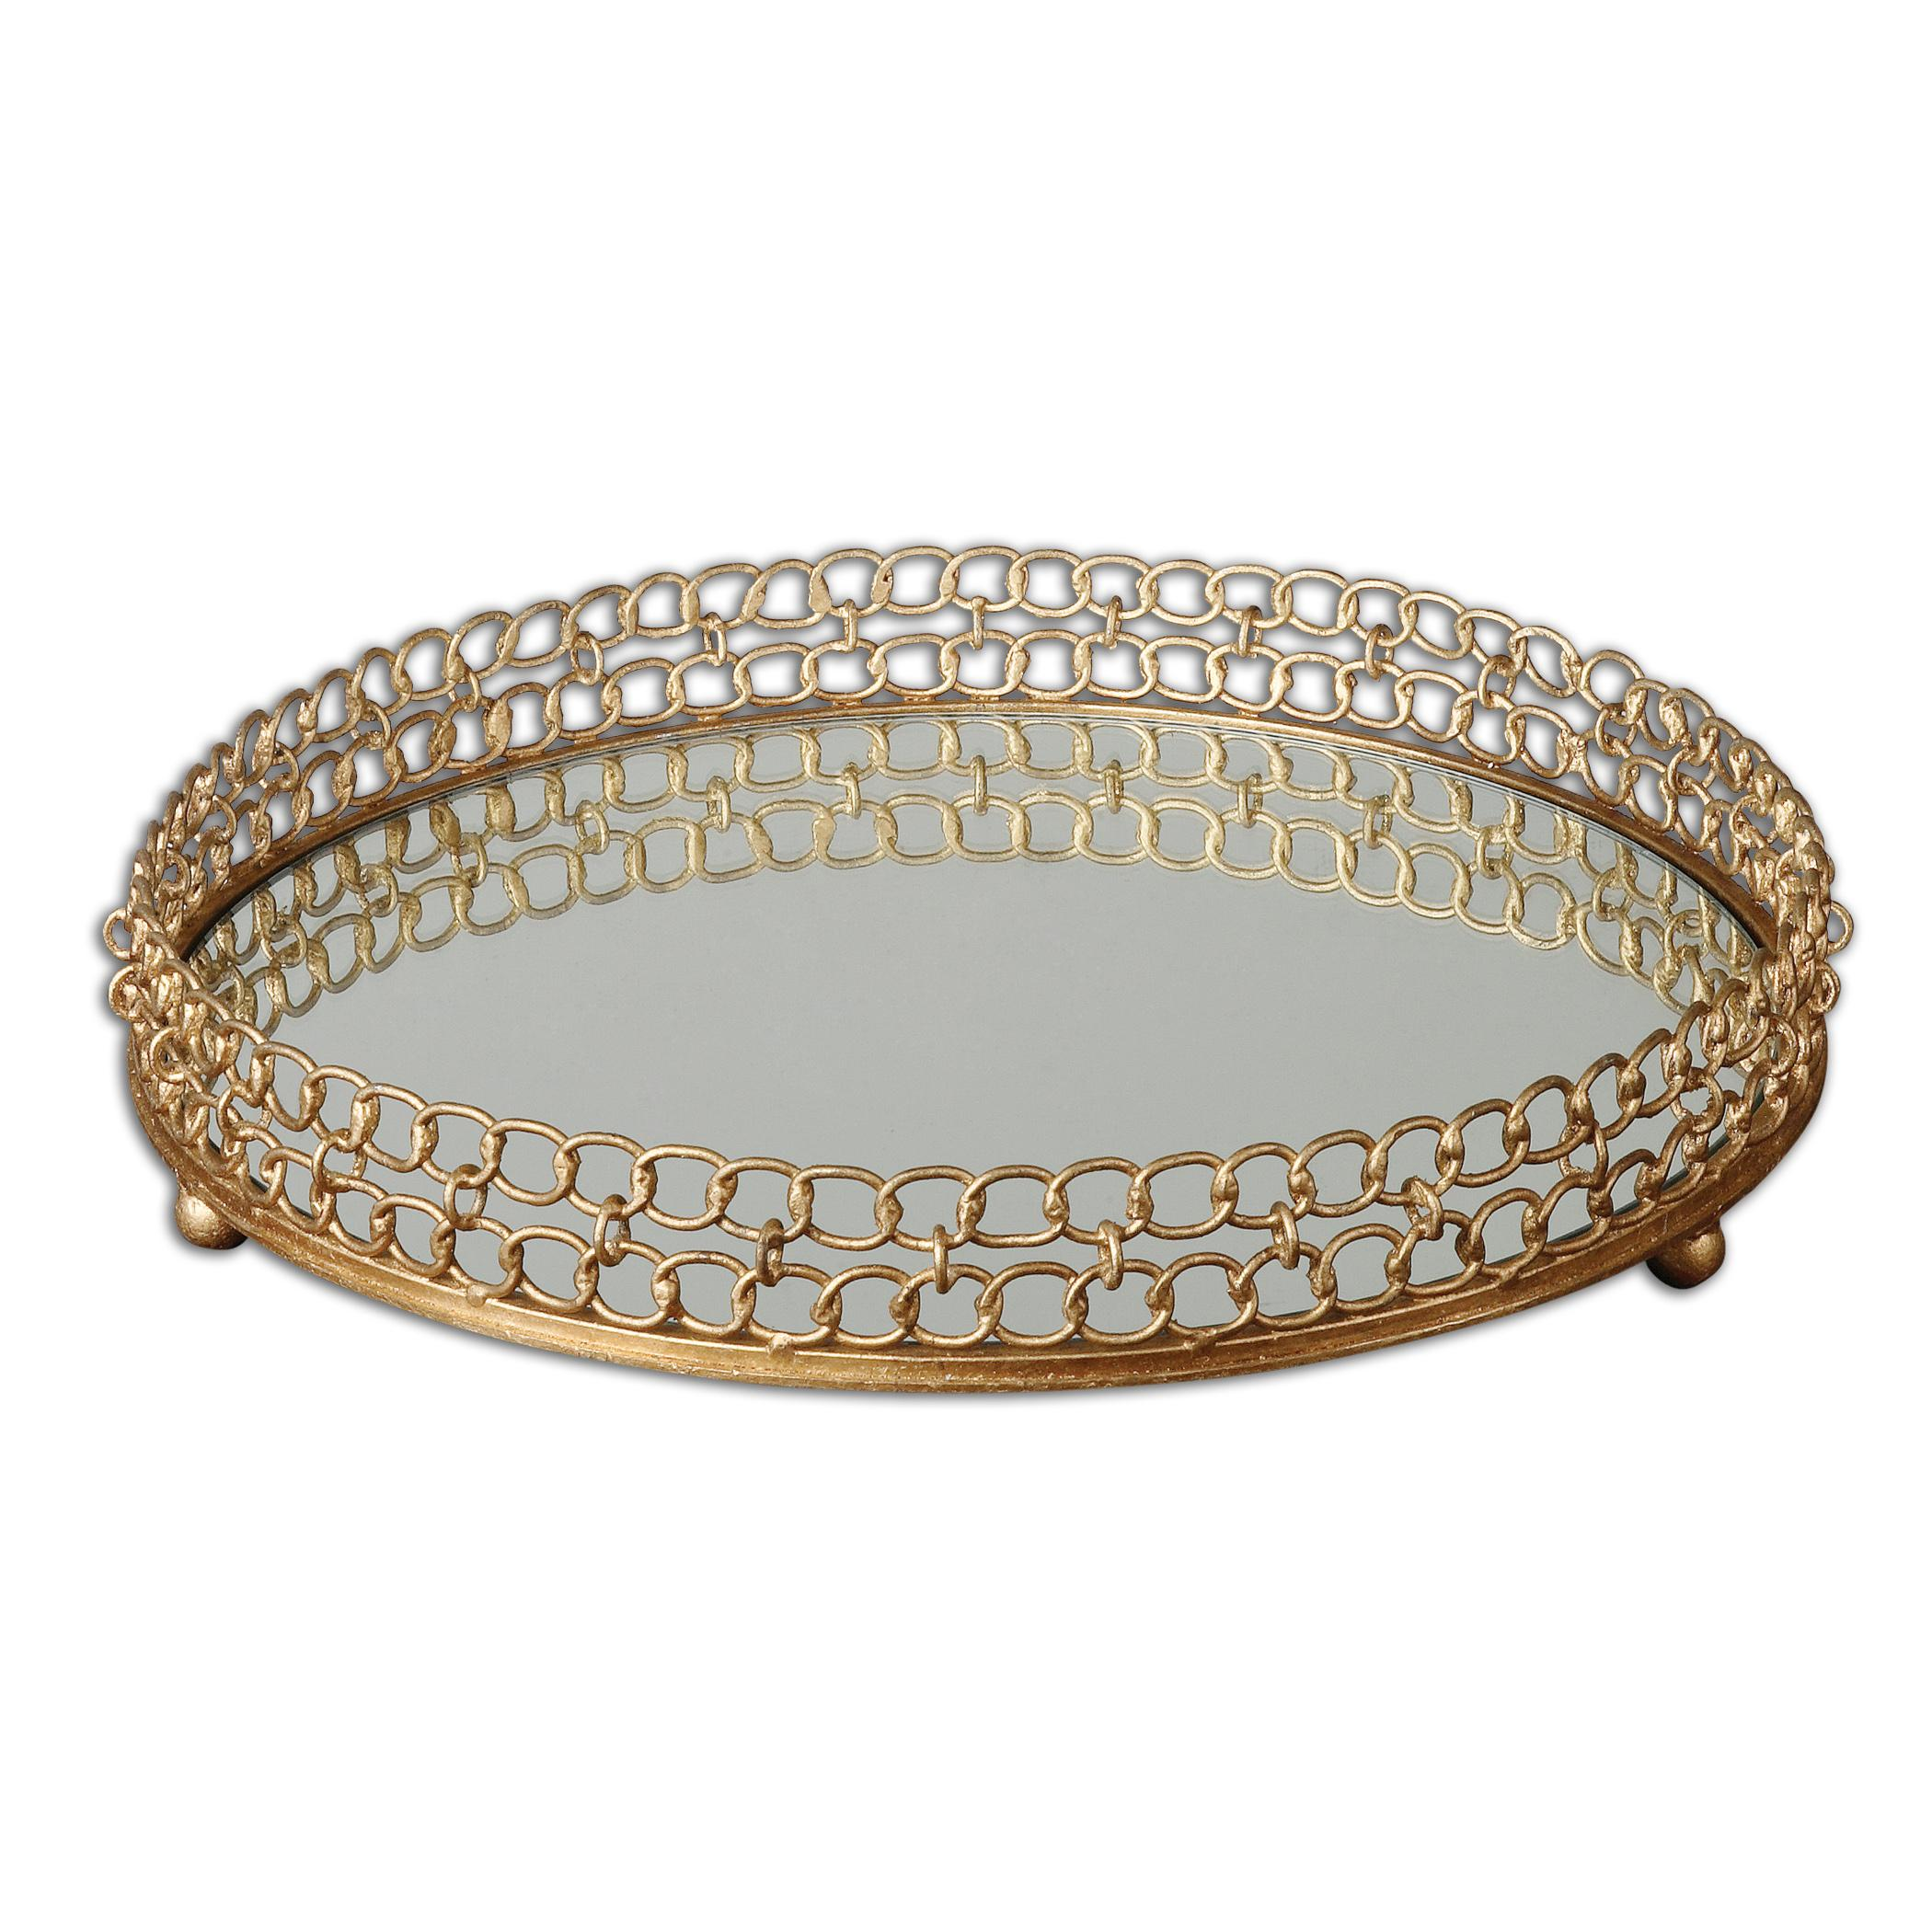 Uttermost Accessories Dipali Mirrored Tray - Item Number: 19807